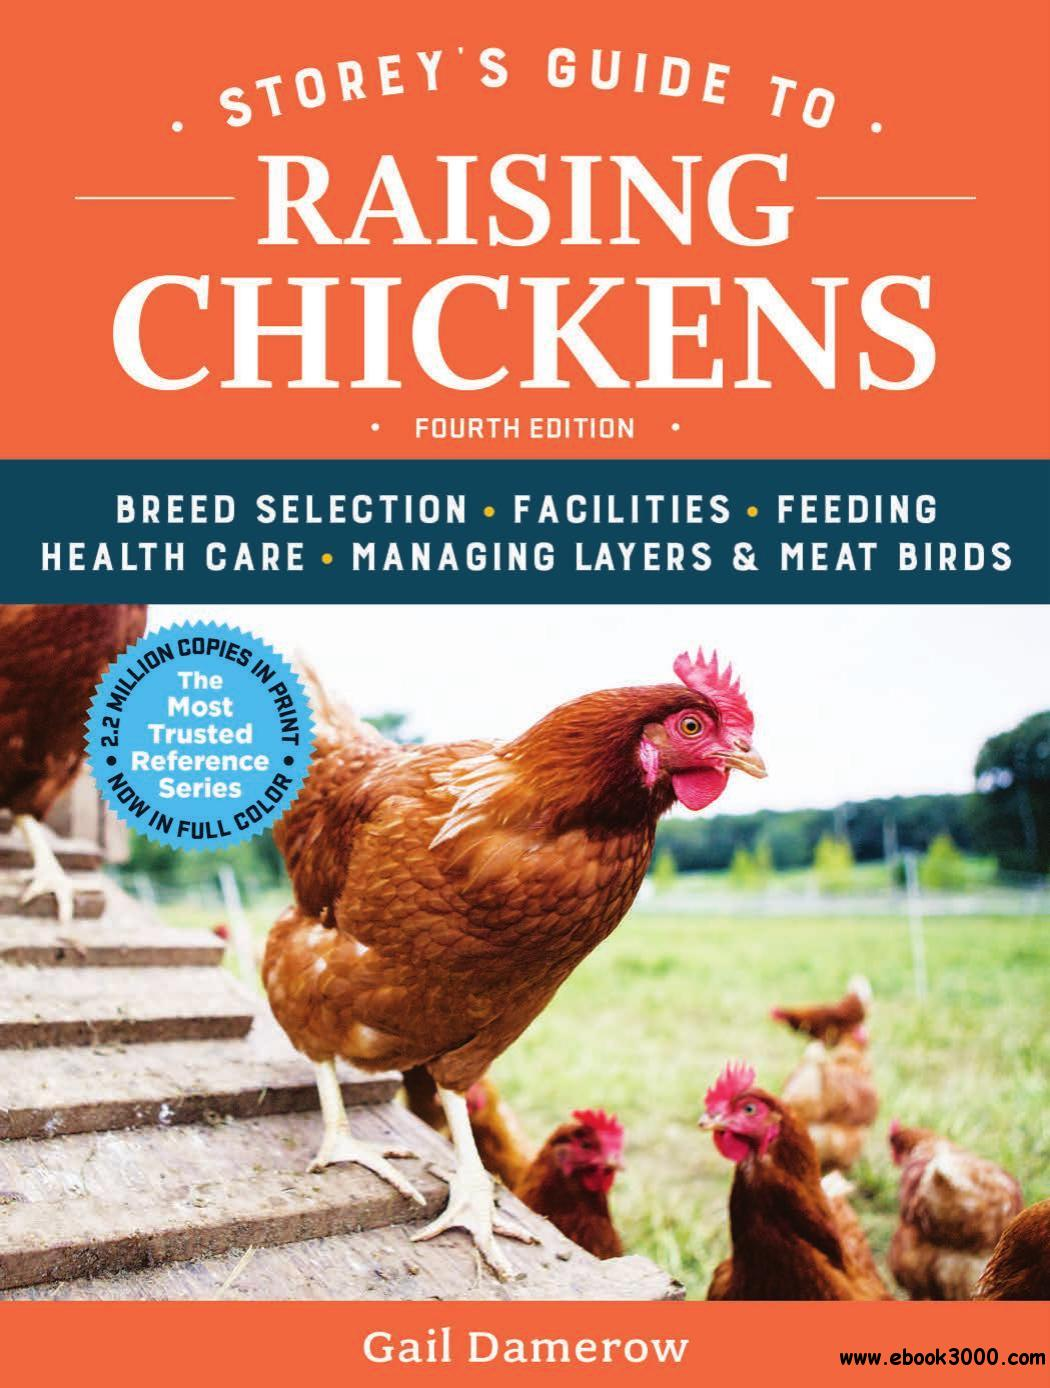 Storey's Guide to Raising Chickens: Breed Selection, Facilities, Feeding, Health Care, Managing Layers & Meat Bird, 4th Edition